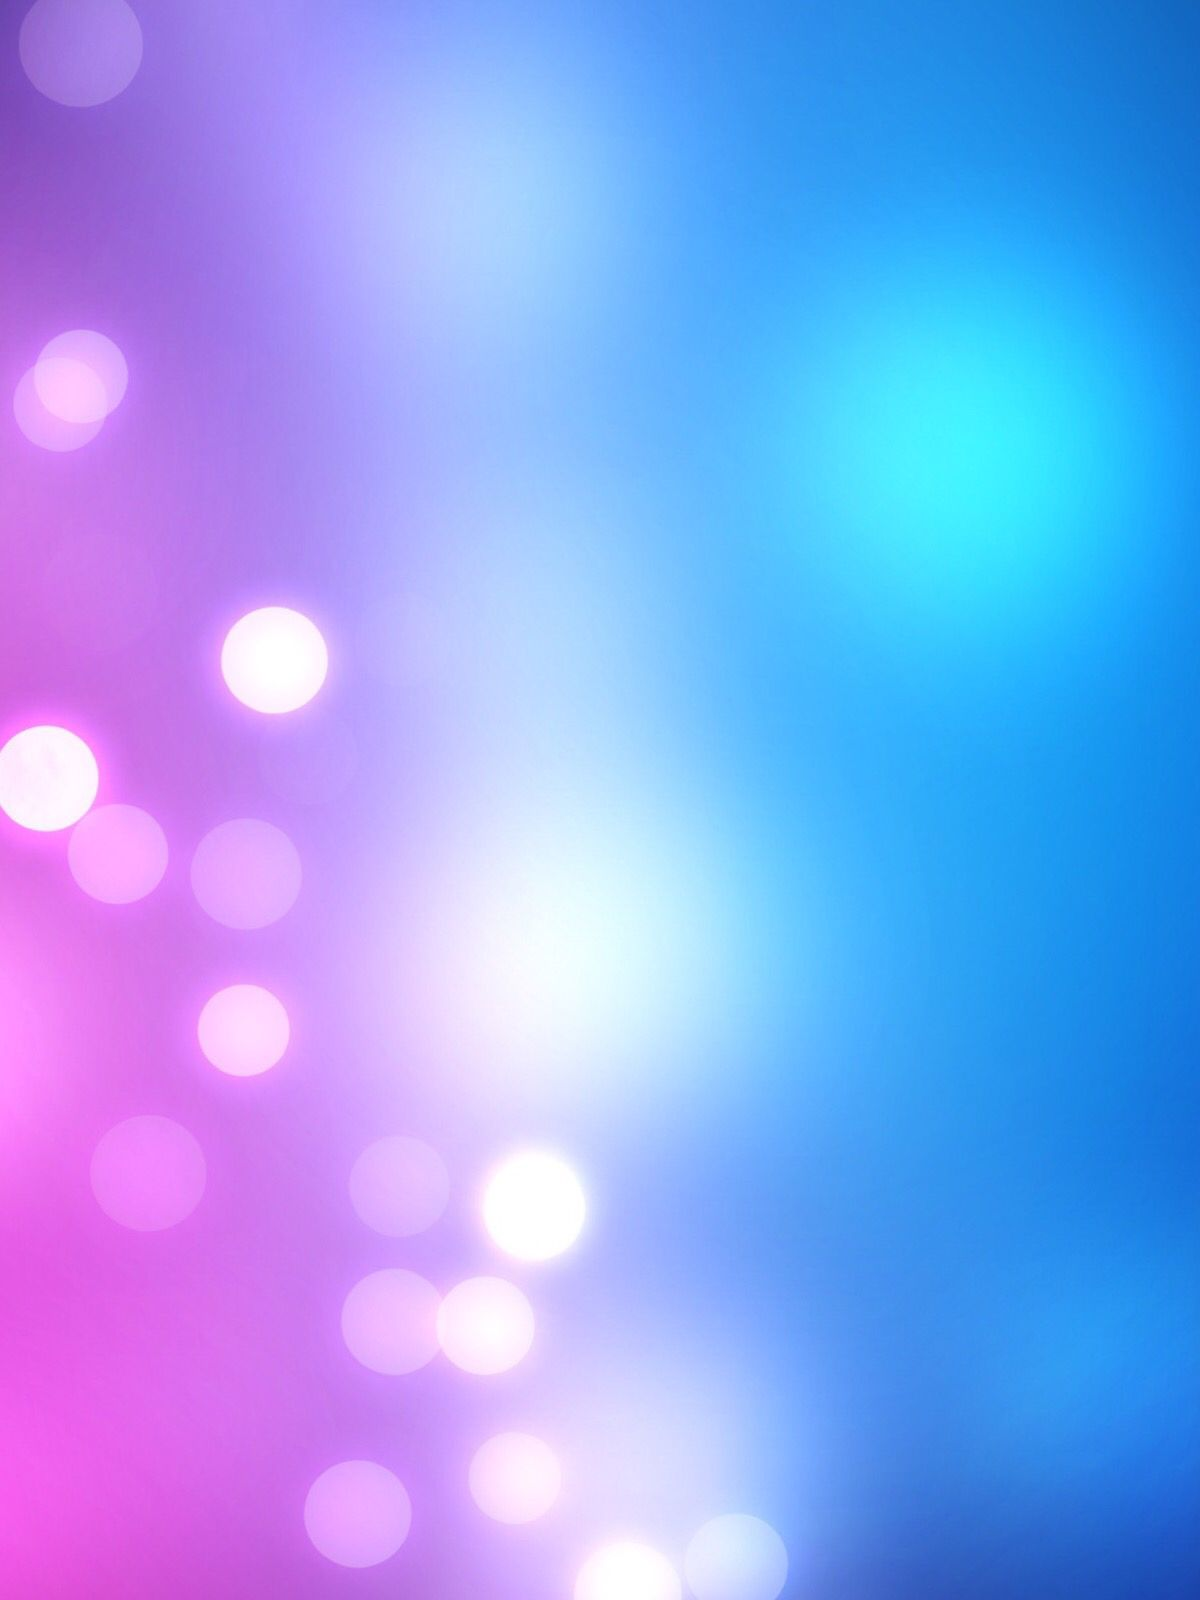 Purple and blue Wallpaper #wallpaper #marieghansen ...